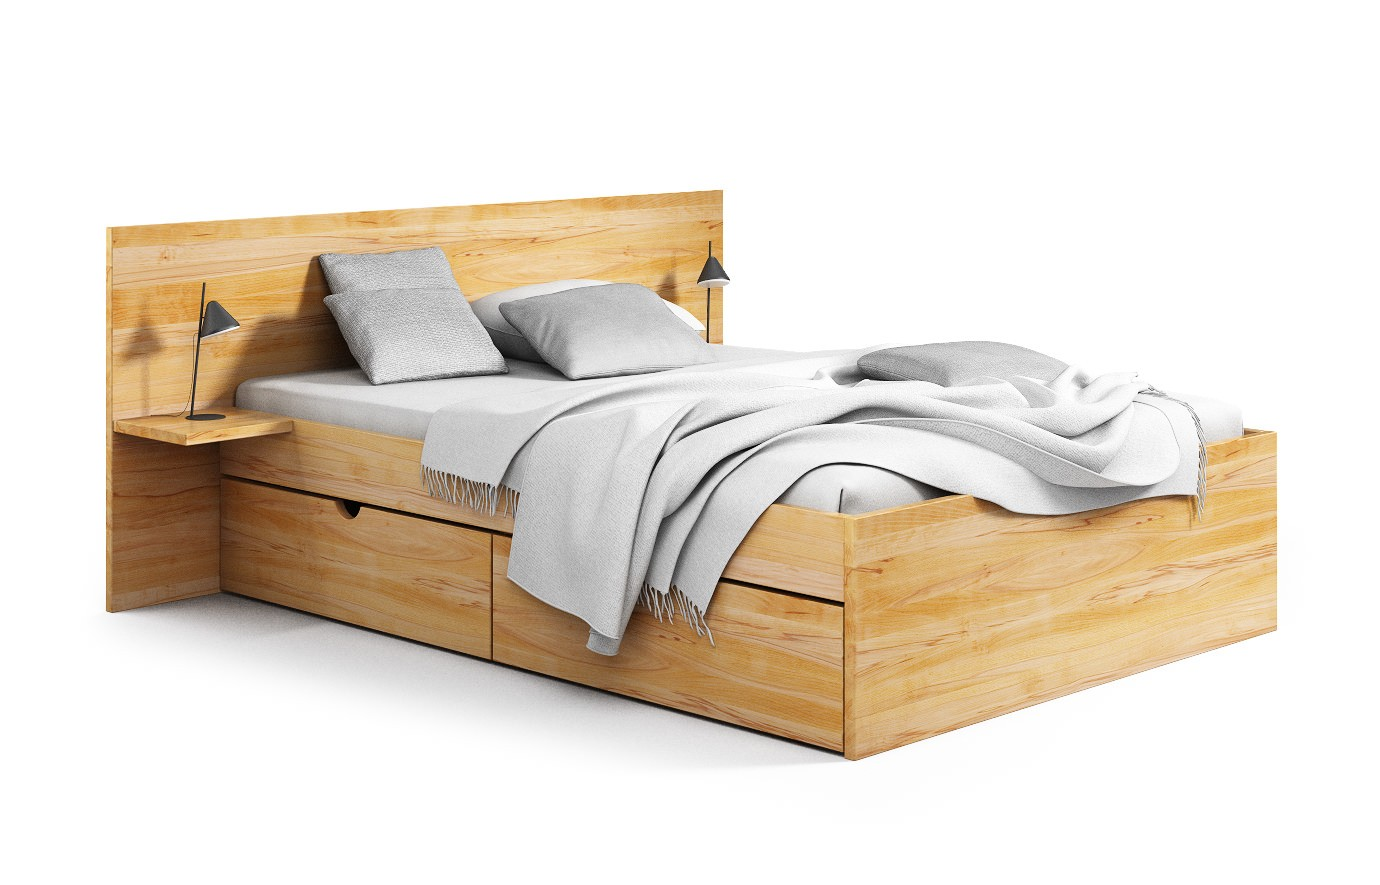 mailand in buche rustikal bett nach ma. Black Bedroom Furniture Sets. Home Design Ideas